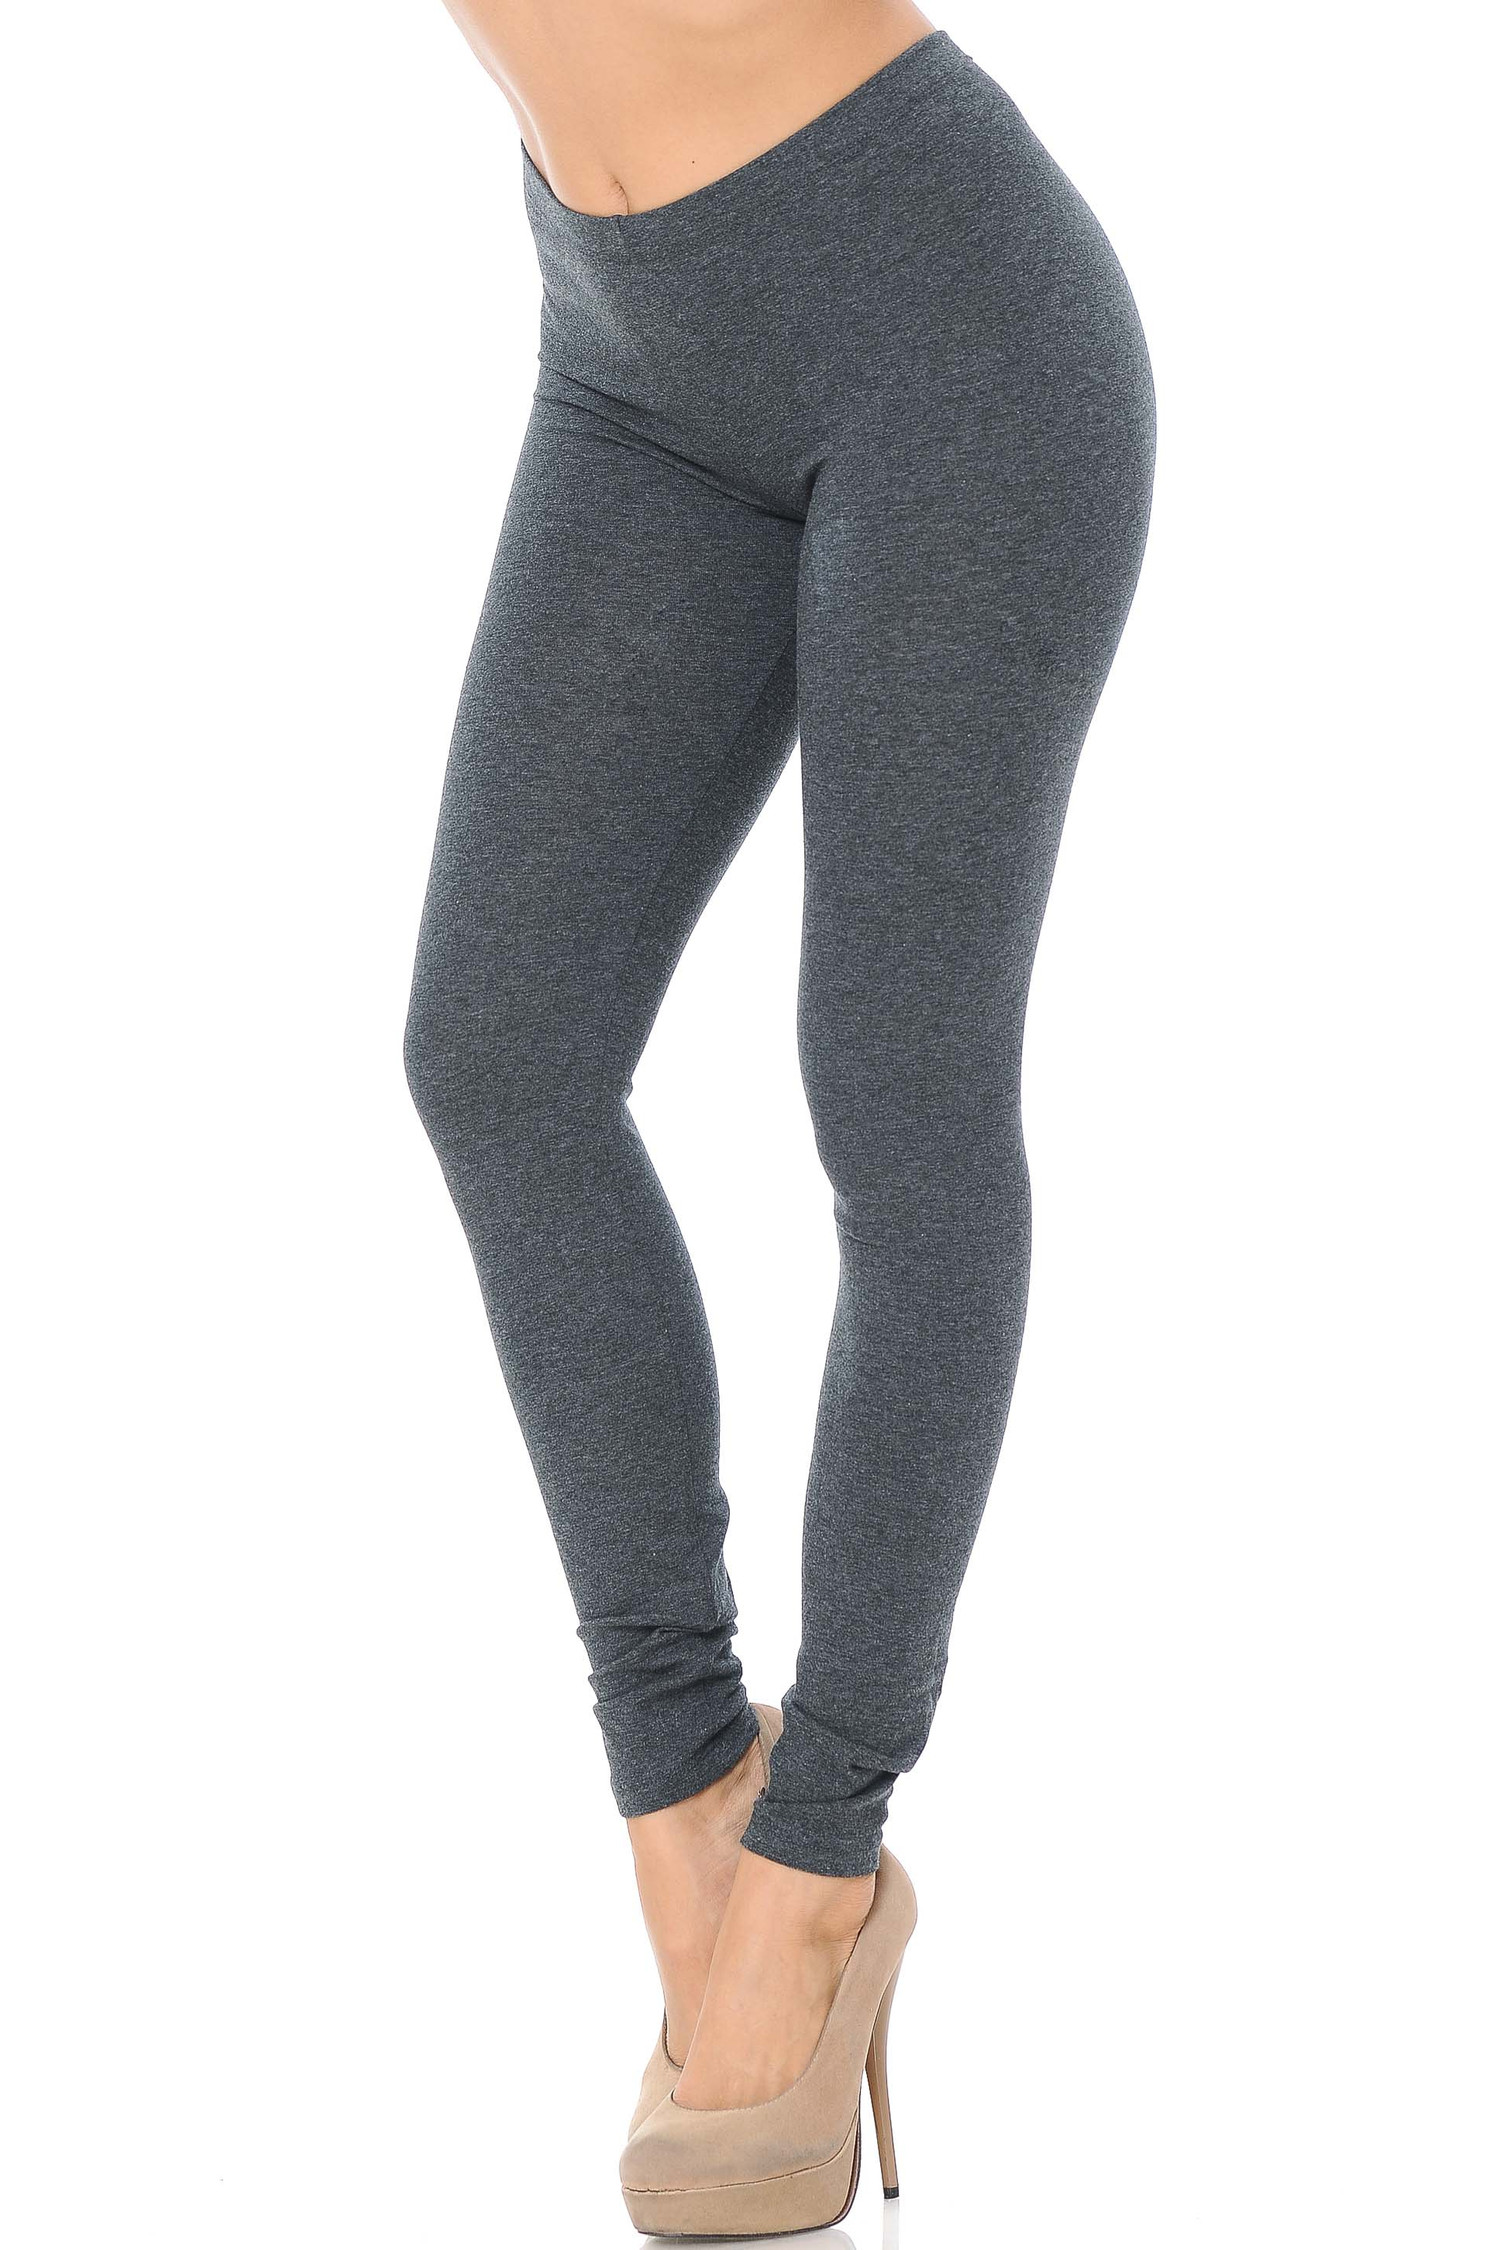 45 degree angle image of female model wearing a charcoal pair of made in the USA cotton leggings showing  a just below the belly button rise and full length going to the ankles.